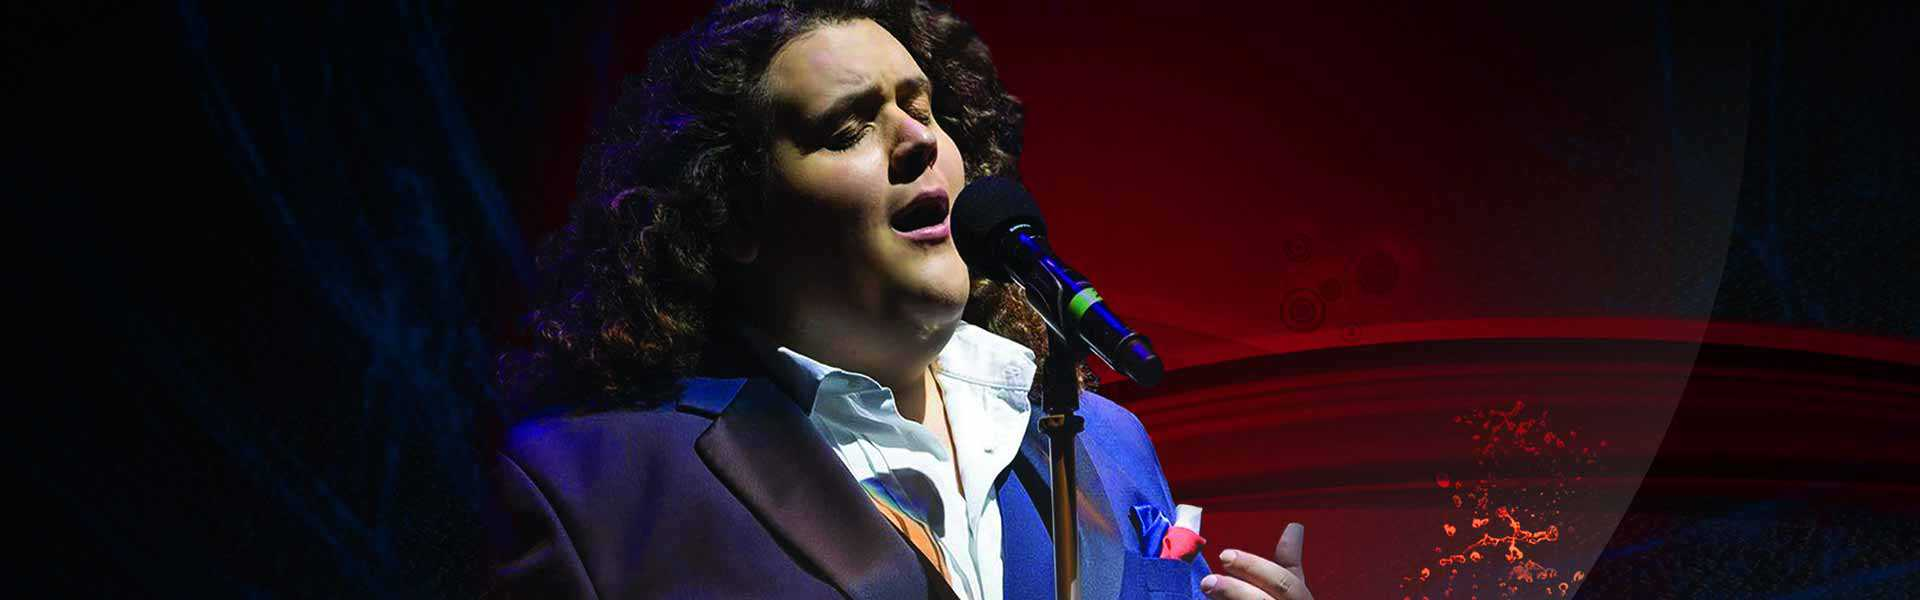 Jonathan Antoine in concert: Beyond the curtain